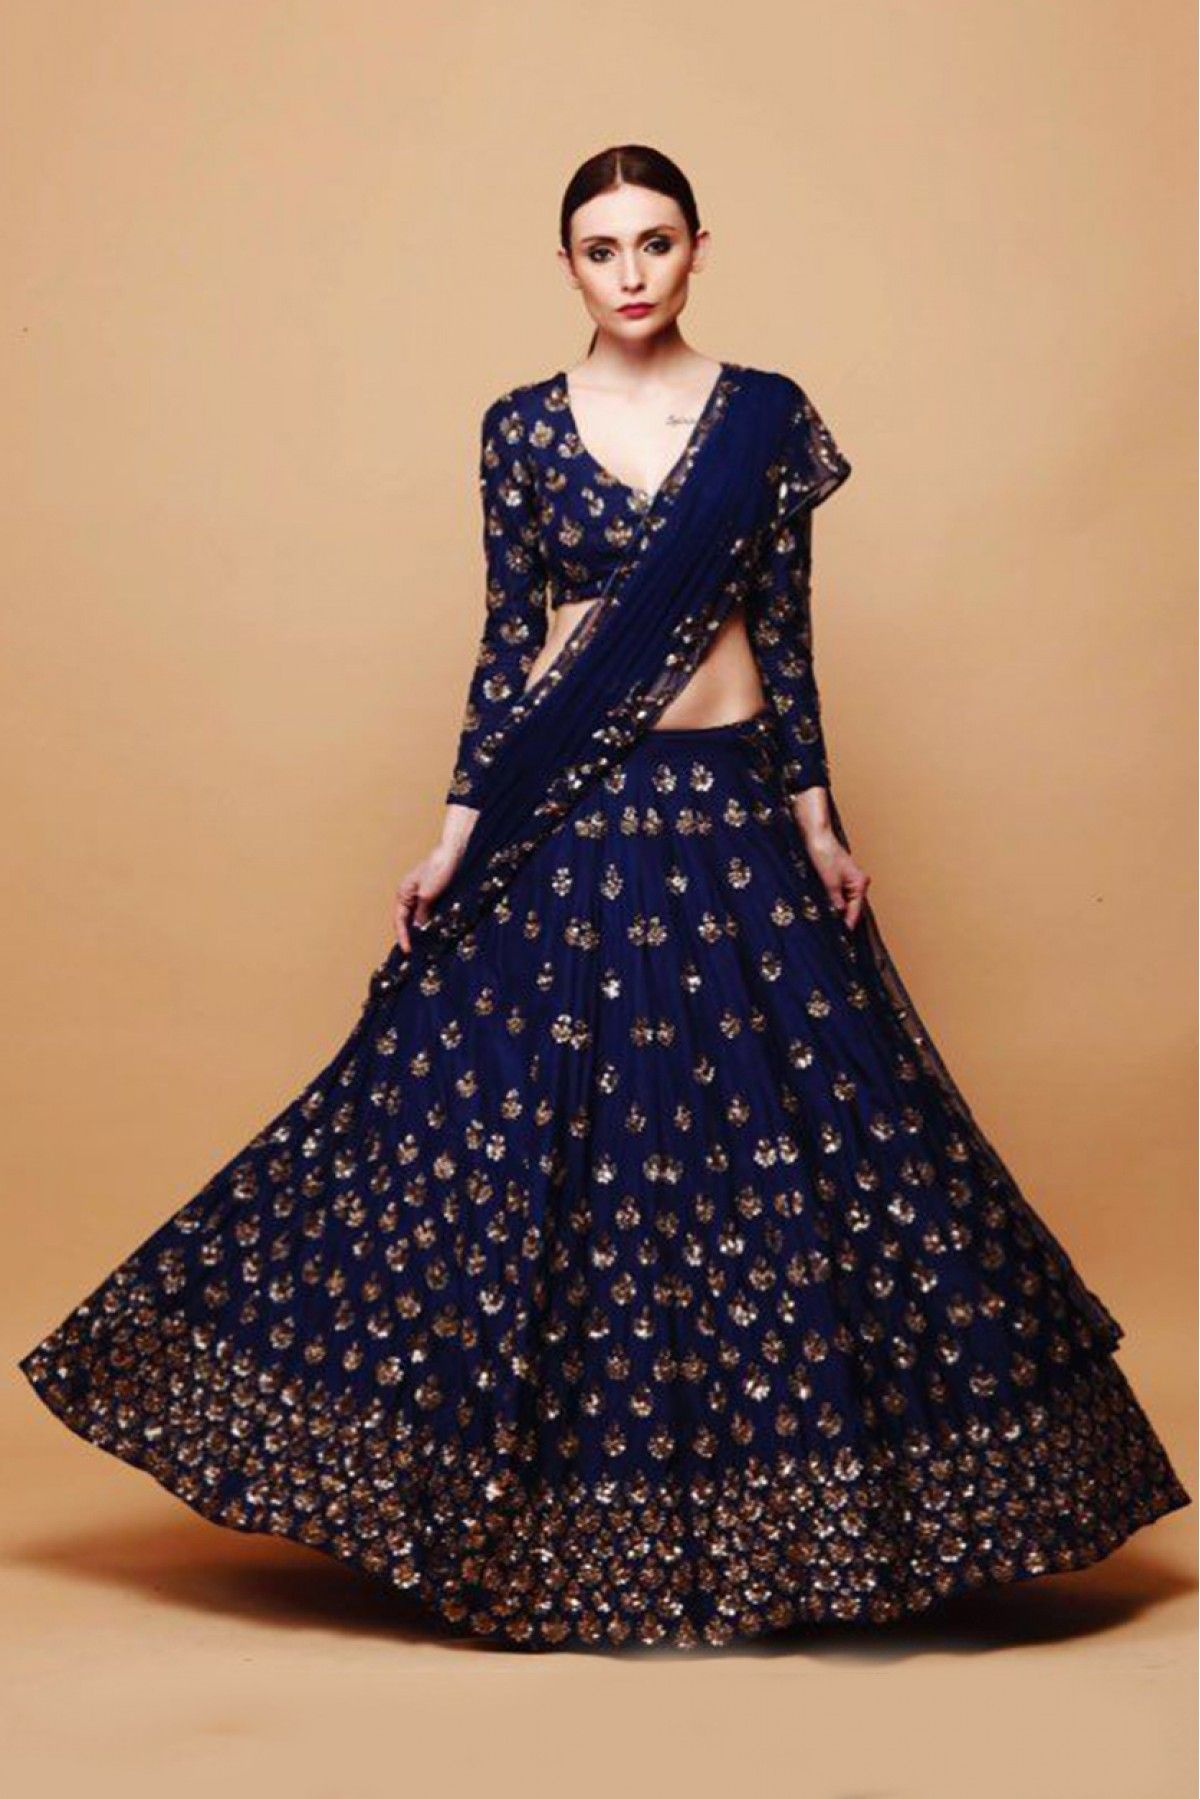 be47e07f02c4 Get In Touch With Your Feminine Side Wearing Blue Coloured Lehenga Choli By  Ninecolours. Made From Art Silk This Lehenga Choli Will Keep You  Comfortable ...